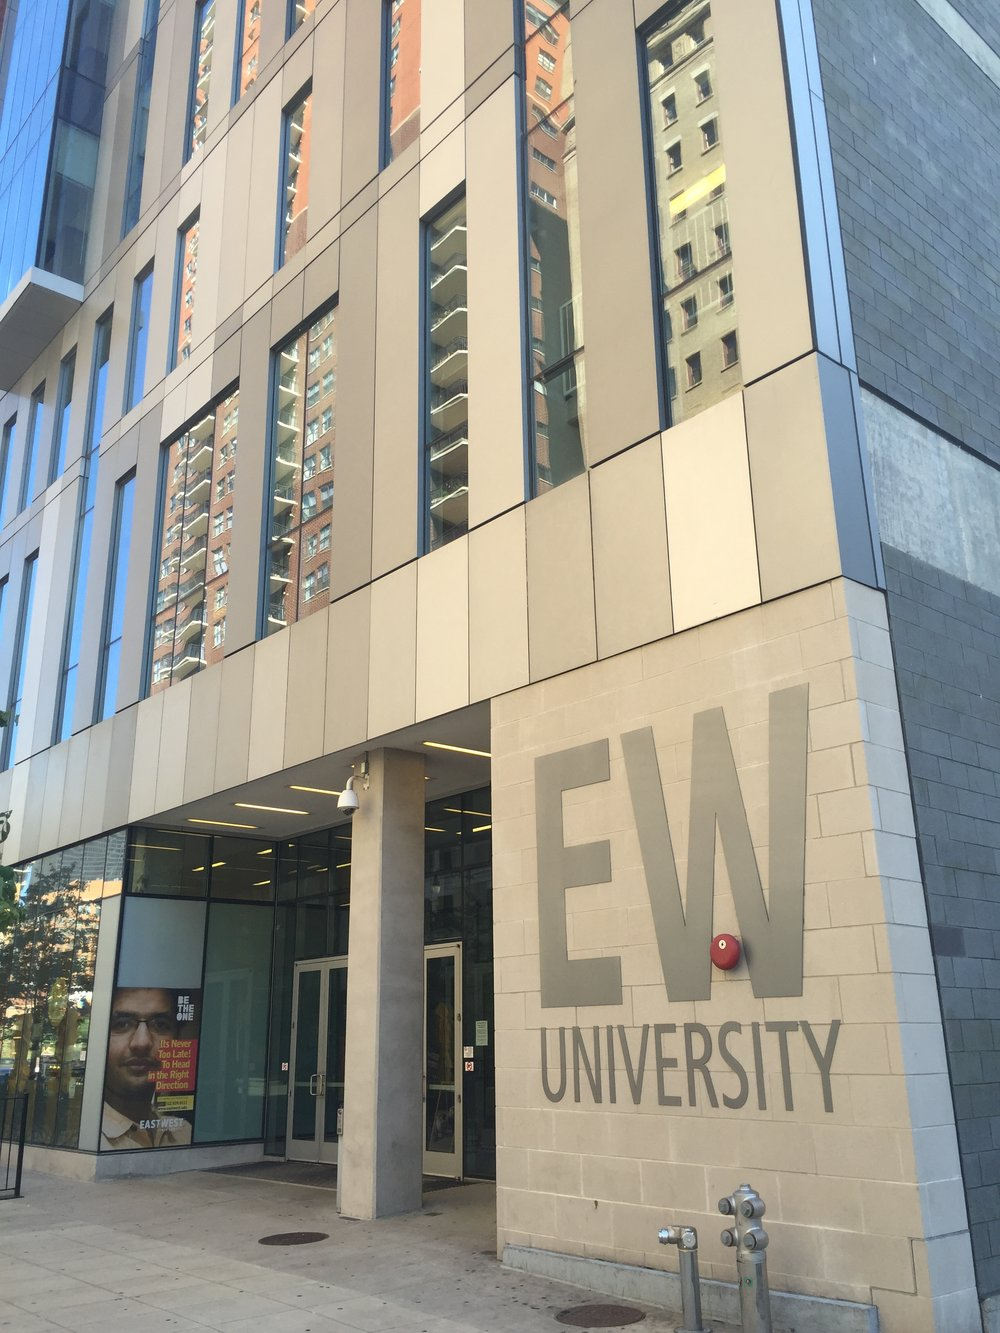 829 S. Wabash Ave. - East West University